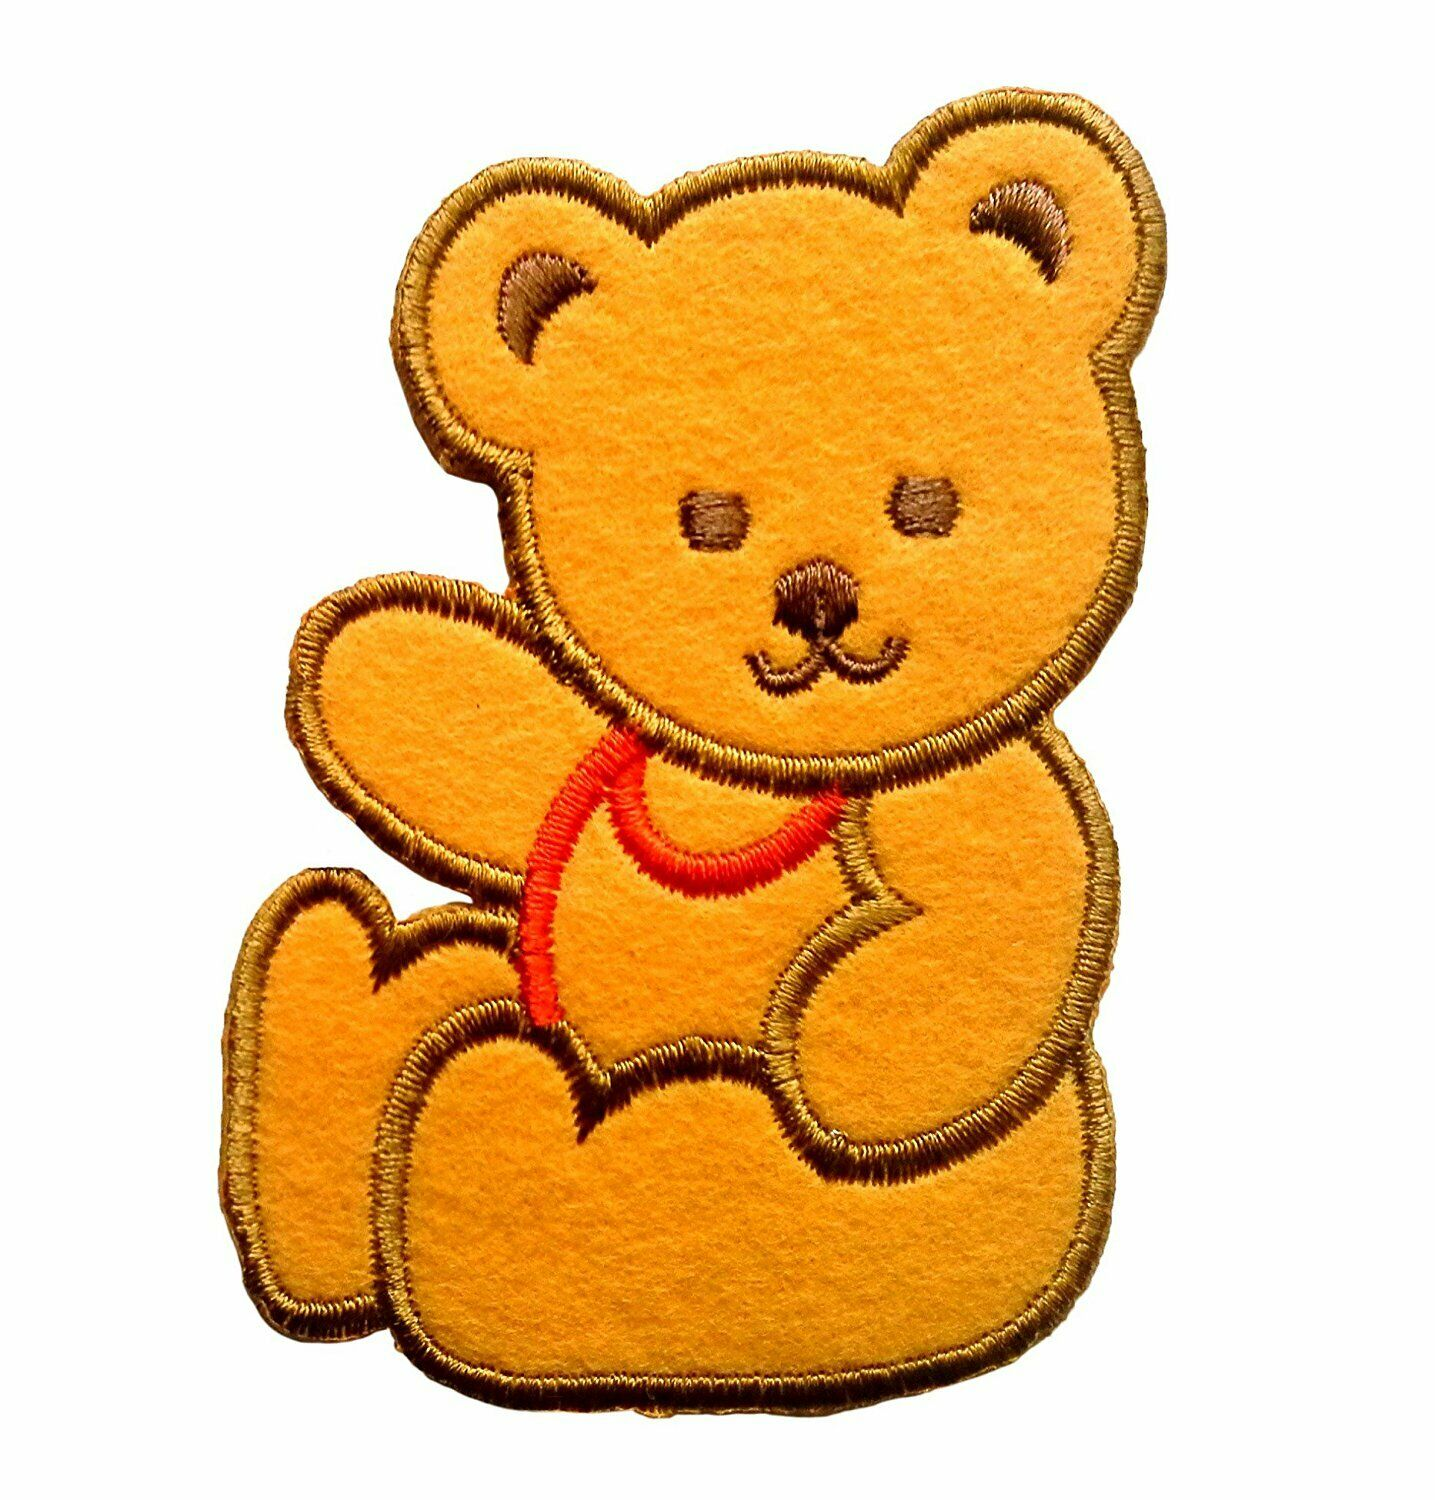 Bear Sits Animal Brown Patch Badge Iron Or Sew On 5.2cm x 4.6cm